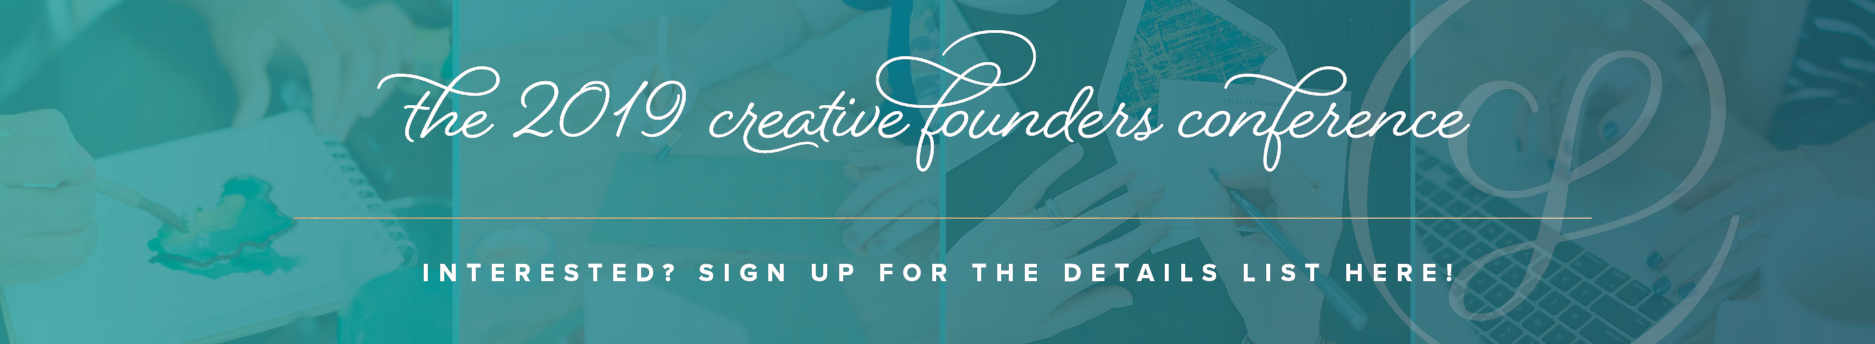 2019 Conference Details Interest List - Society for Creative Founders